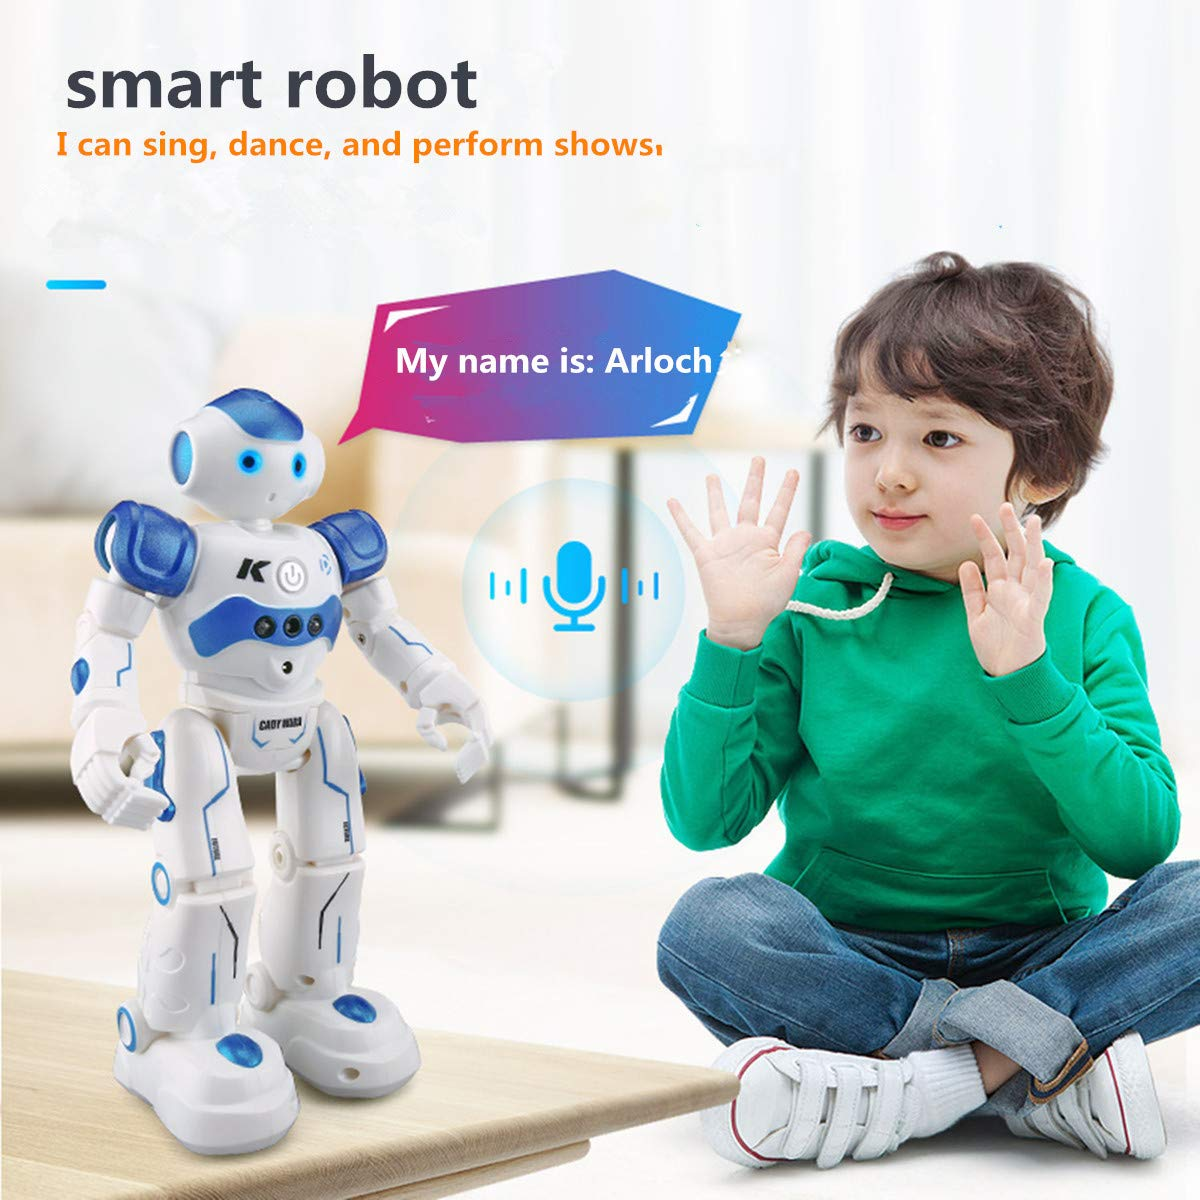 WEECOC Smart Robot Toys Gesture Control Remote Control Robot Kids Toys Birthday Can Singing Dancing Speaking Two Walking Models (White) by WEECOC (Image #6)